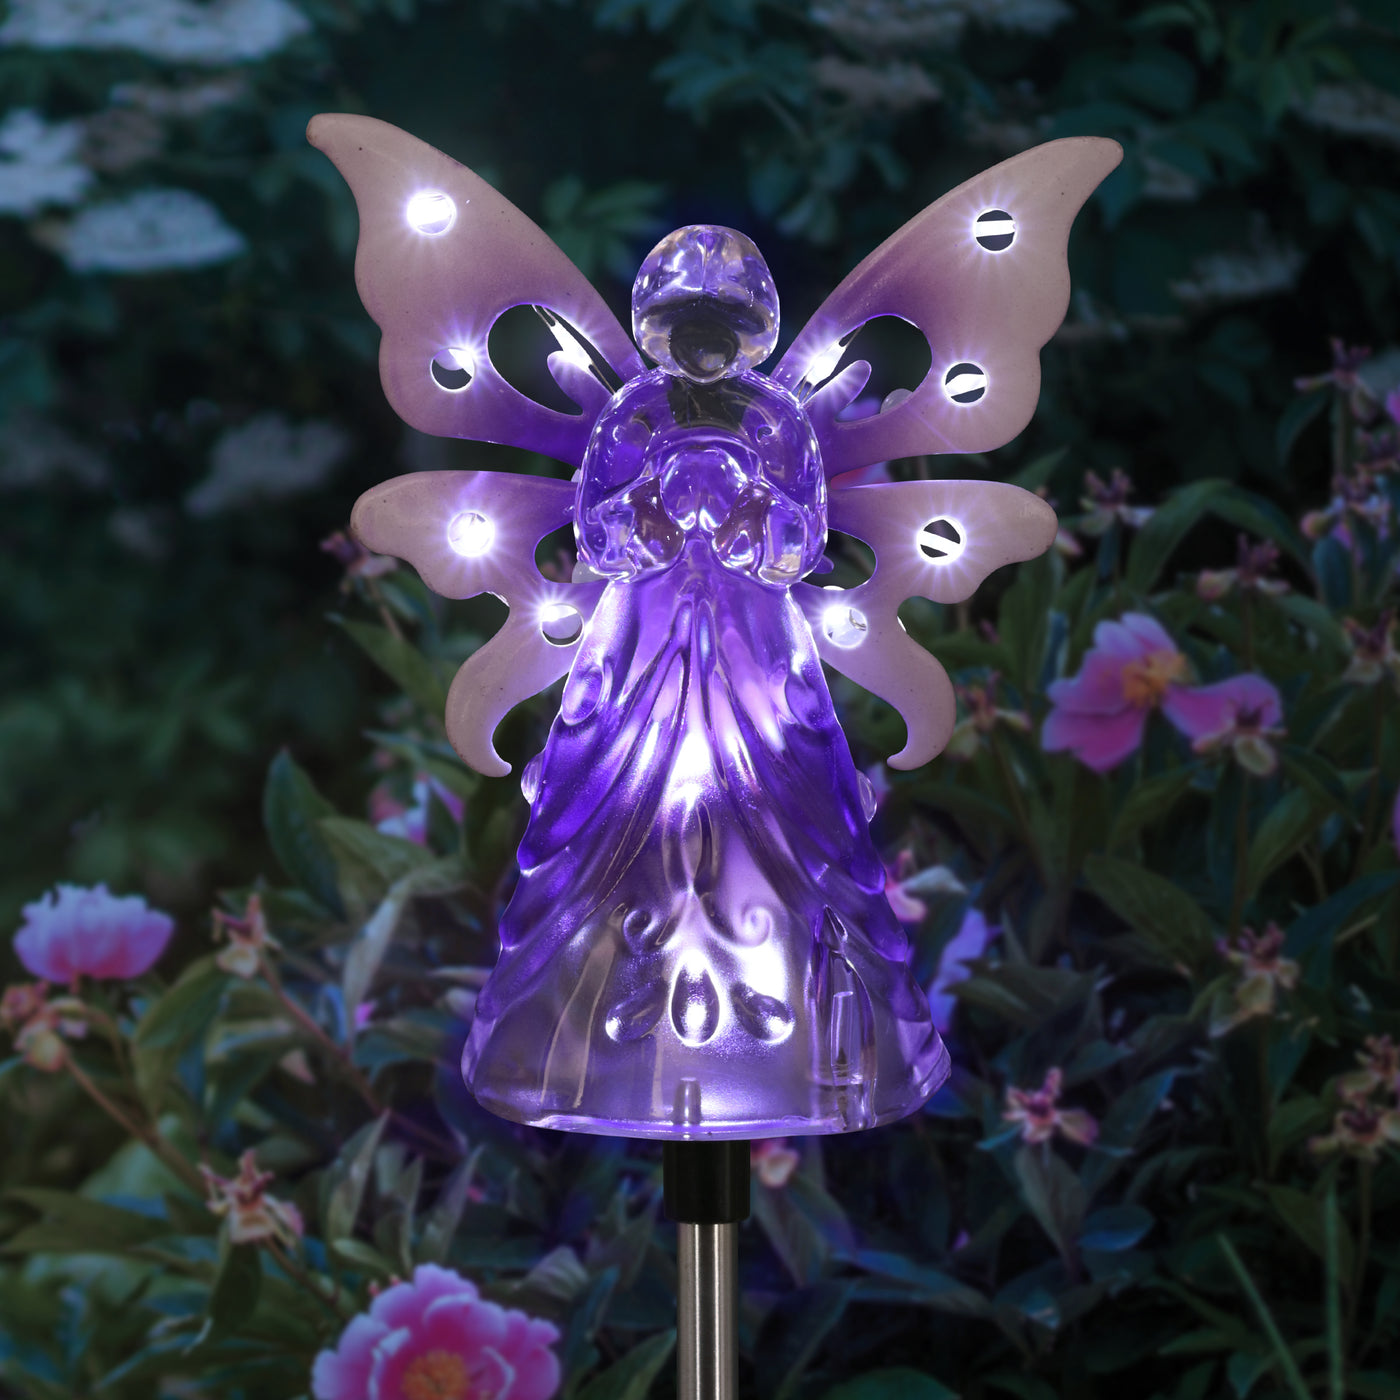 Solar Acrylic Angel With Wings And Twelve Led Lights Metal Garden Stake In Purple 4 By 34 Inches Exhart Home Garden Decor